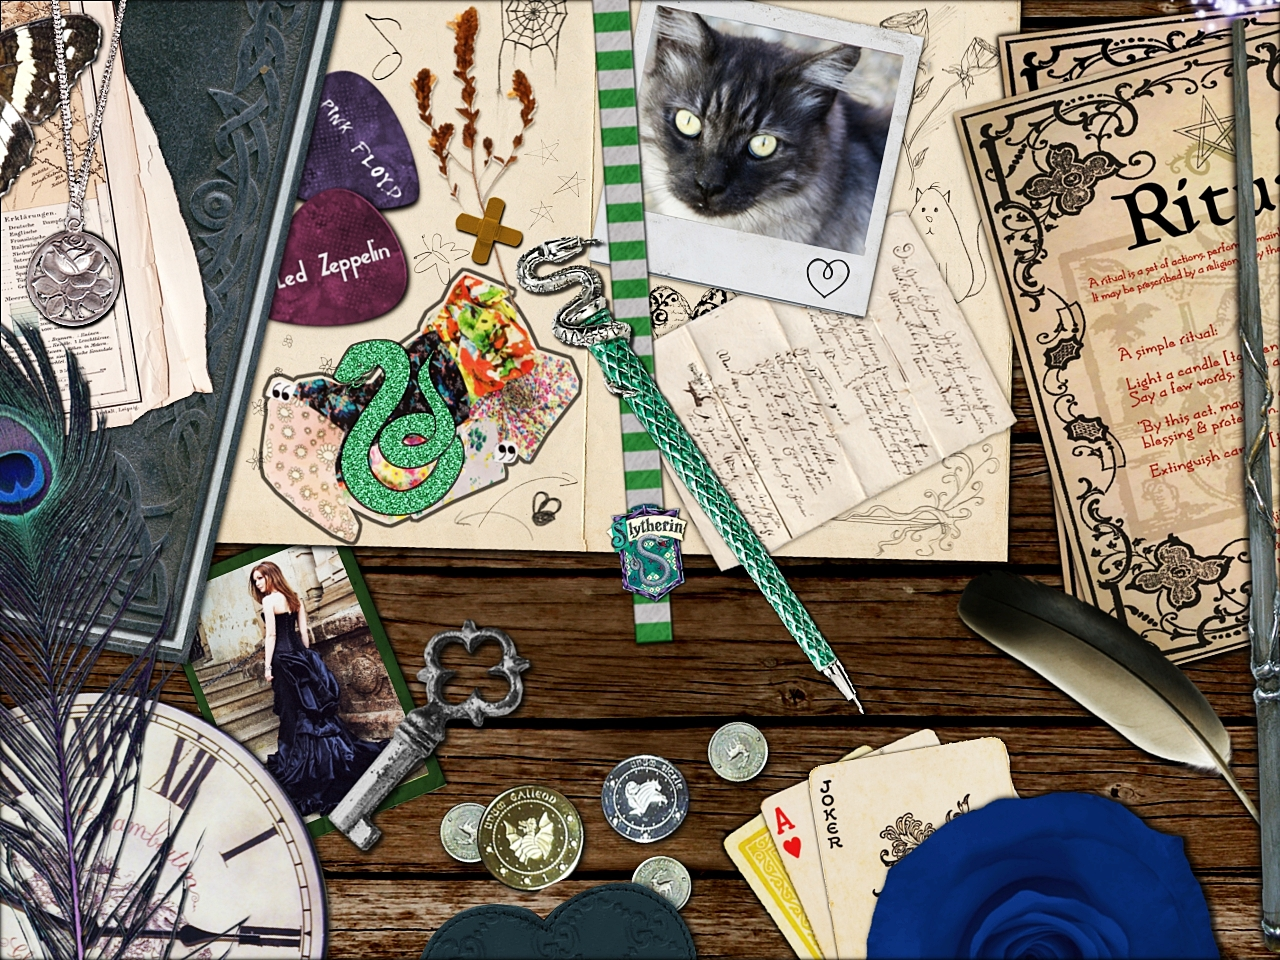 how to get sorted into ravenclaw on pottermore 2016